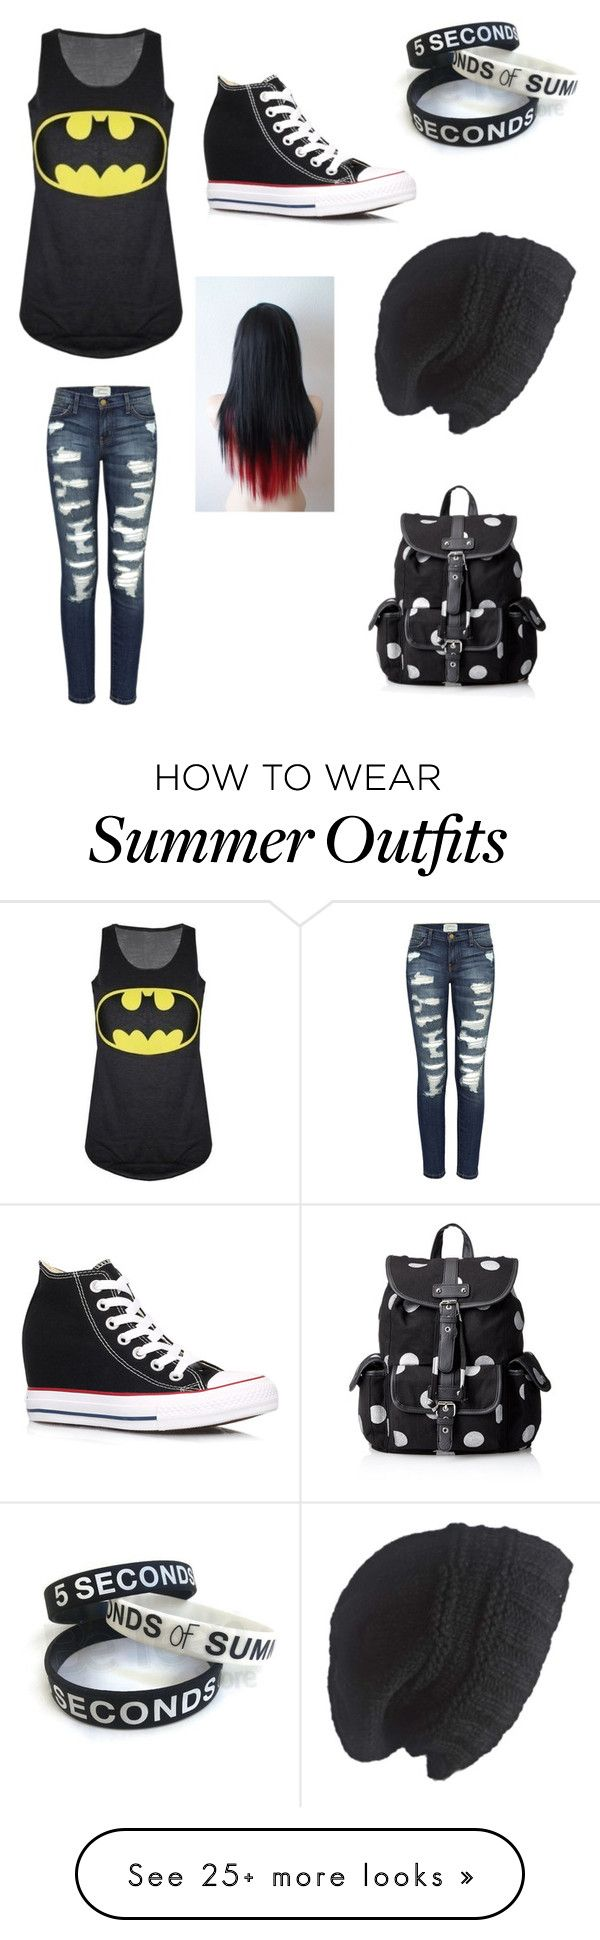 """-OC Outfit #1-"" by invader-senpai on Polyvore featuring Current/Elliott, Converse, Laundromat and Wild Pair"